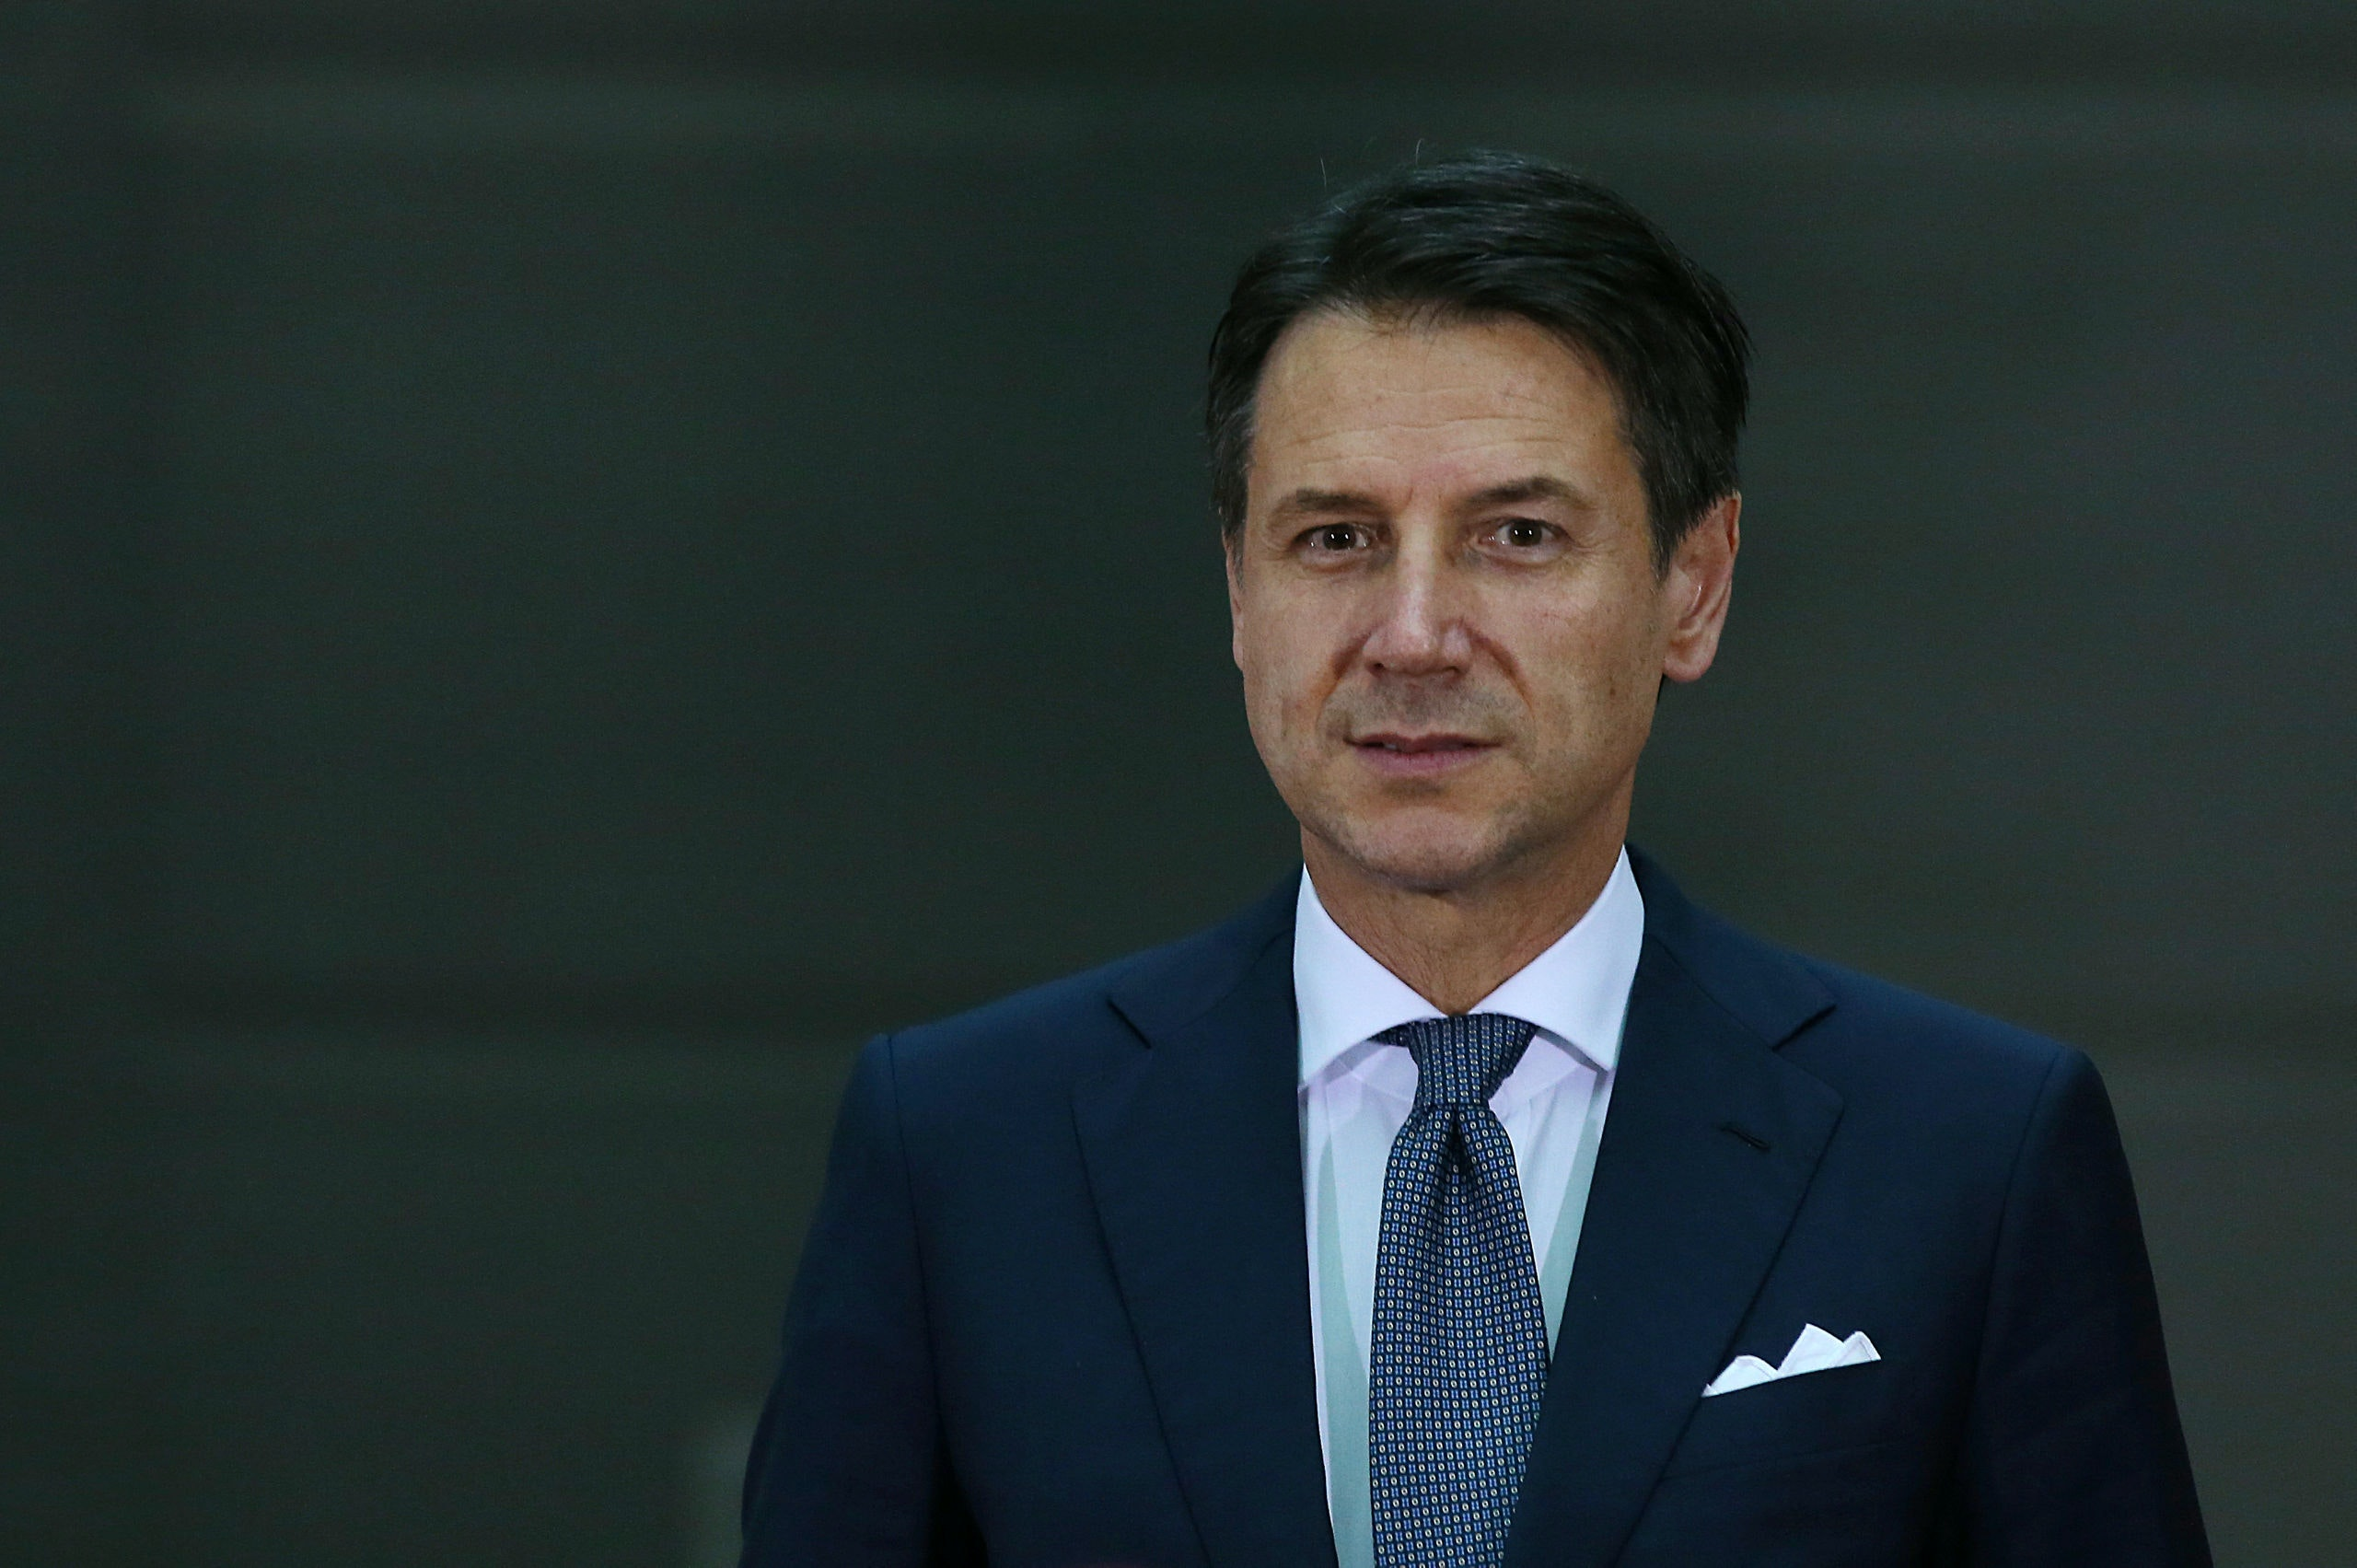 Italian Prime Minister Giuseppe Conte is seen during arrivals ahead of the G20 leaders summit in Buenos Aires, Argentina, November 29, 2018. REUTERS/Agustin Marcarian